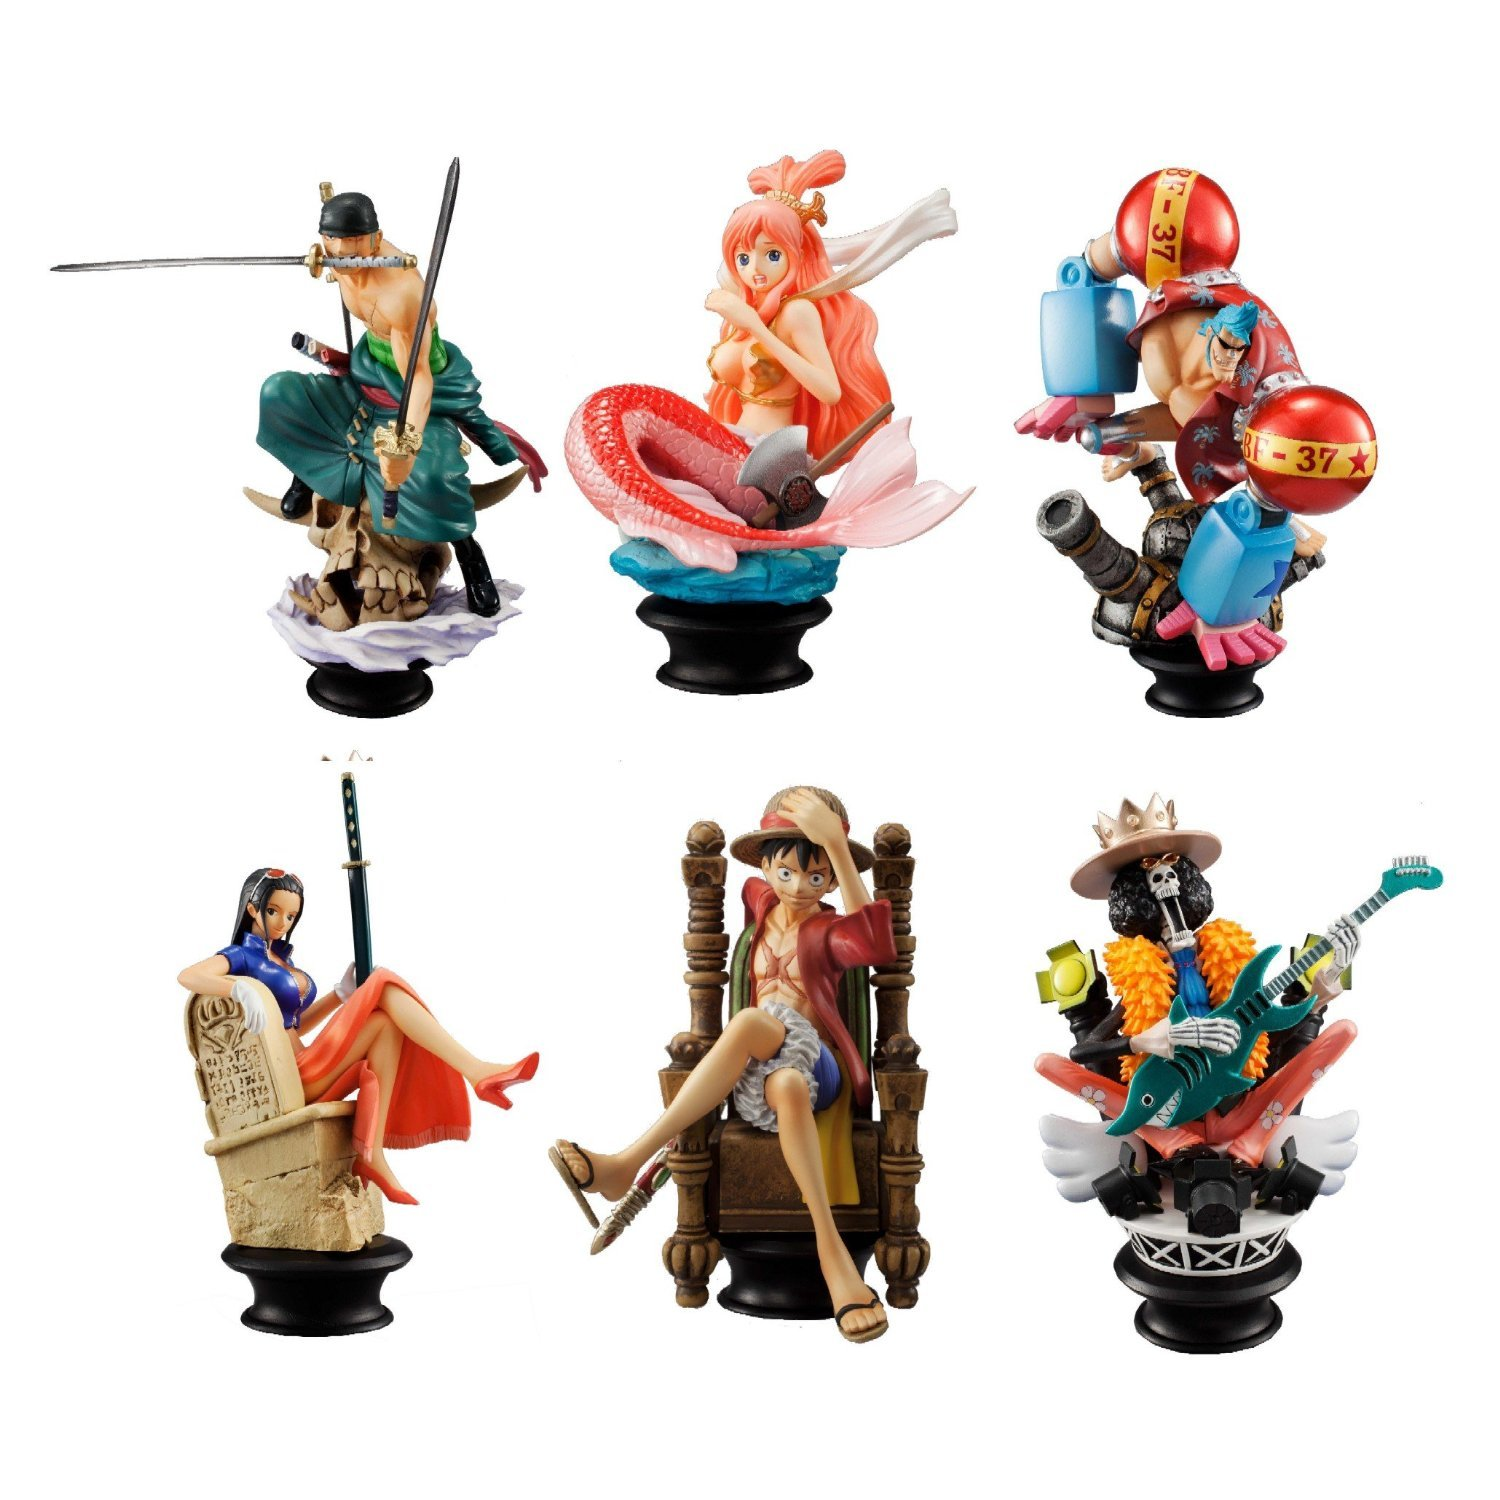 One Piece Megahouse Chess Chess Chess Piece Collection Vol. 2 Trading Figure Display 9 (japan import) 5ac73b